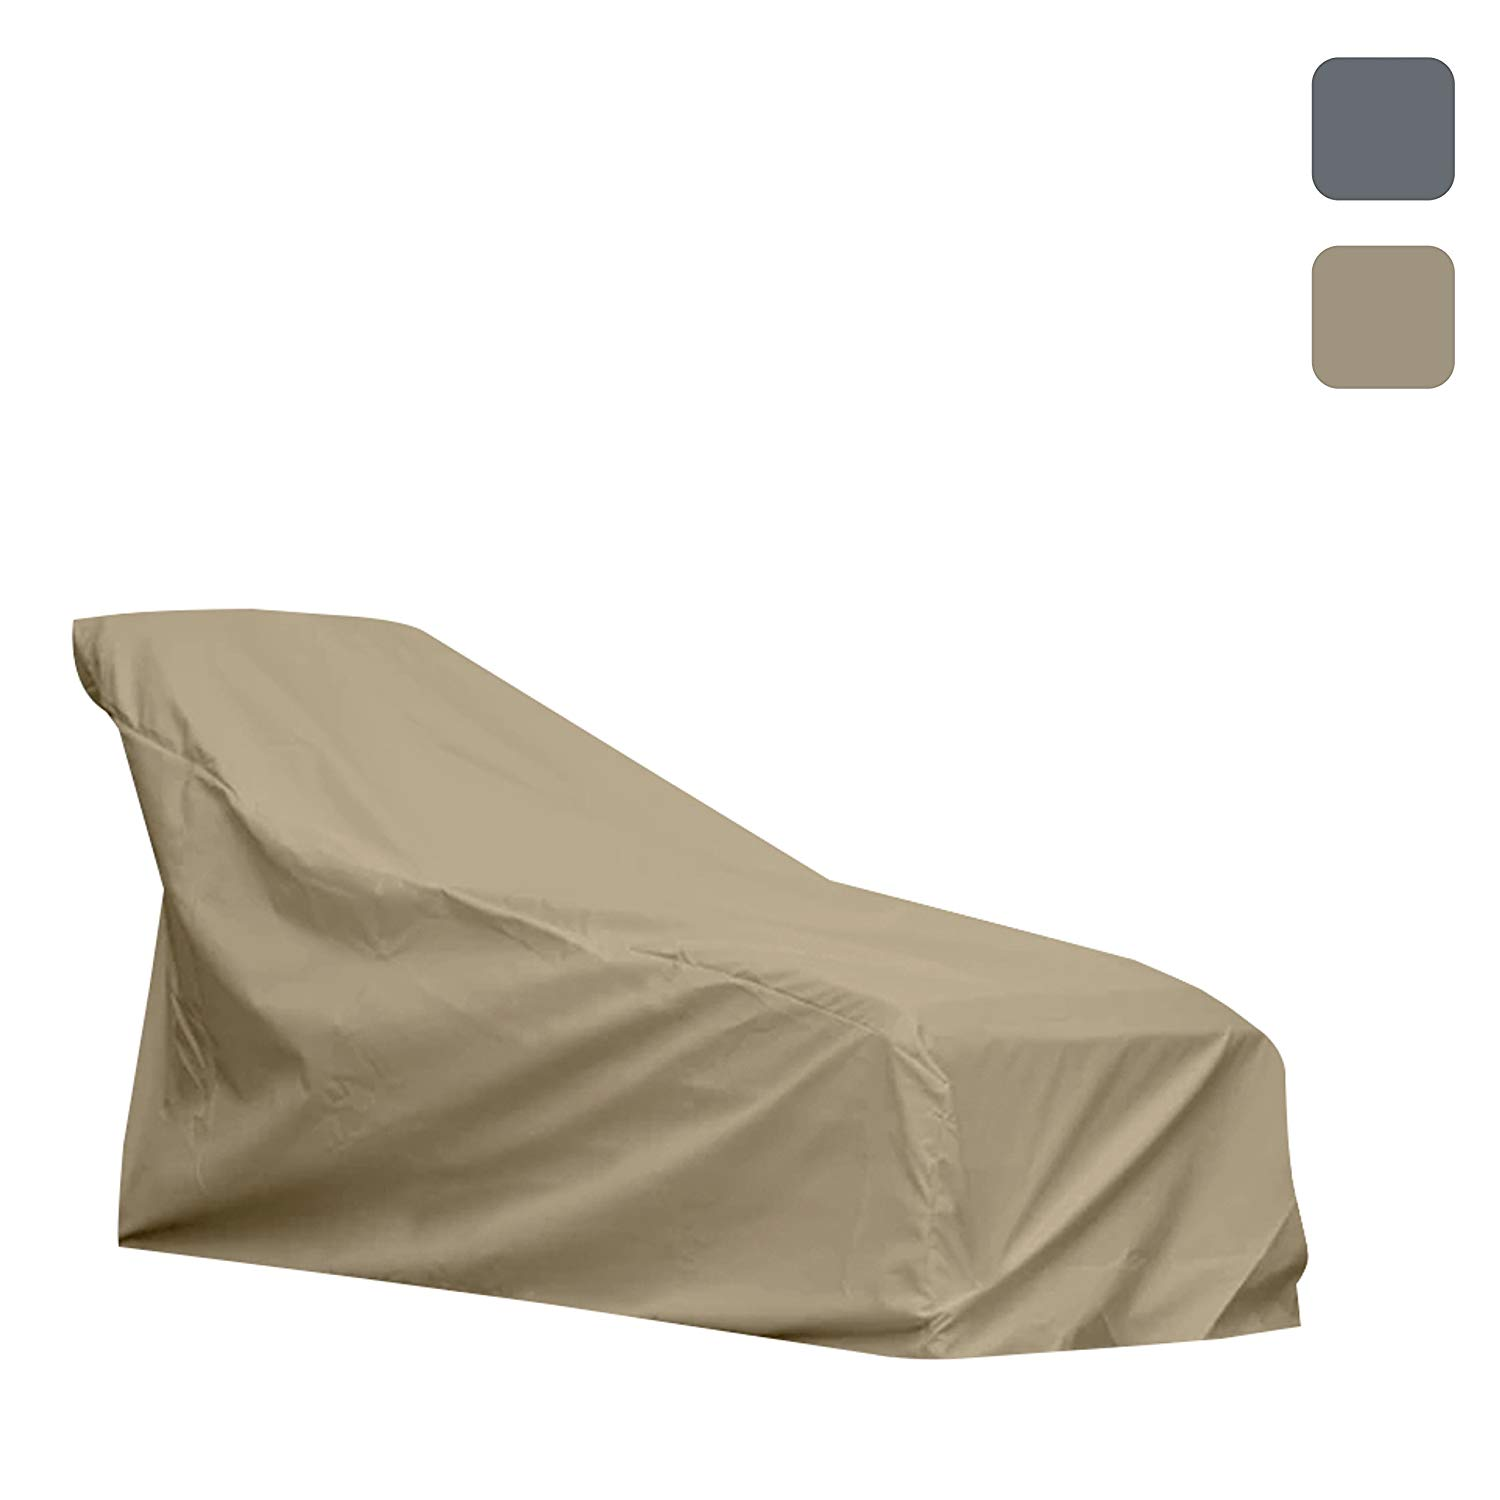 Patio Chaise Lounge Cover- Waterproof, Air vents, 100% UV-Resistant, 1000 D Both Side PVC Coated, Outdoor Furniture Chaise Covers with Drawstring for Snug fit to Withstand Winds & Storms, Beige